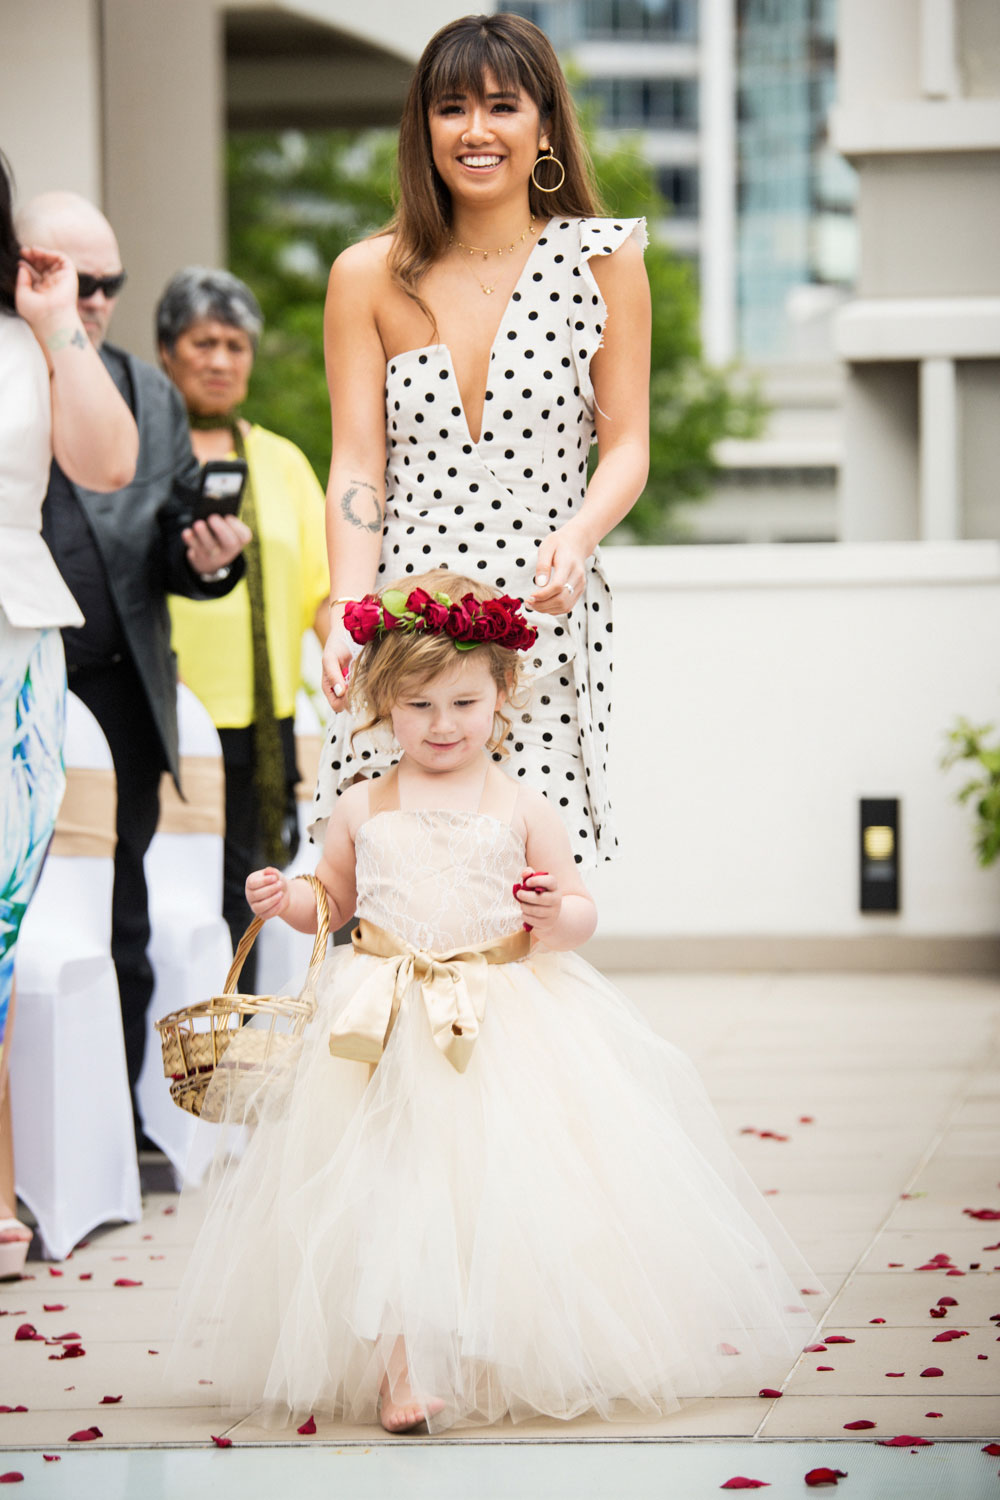 auckland wedding flower girl walking